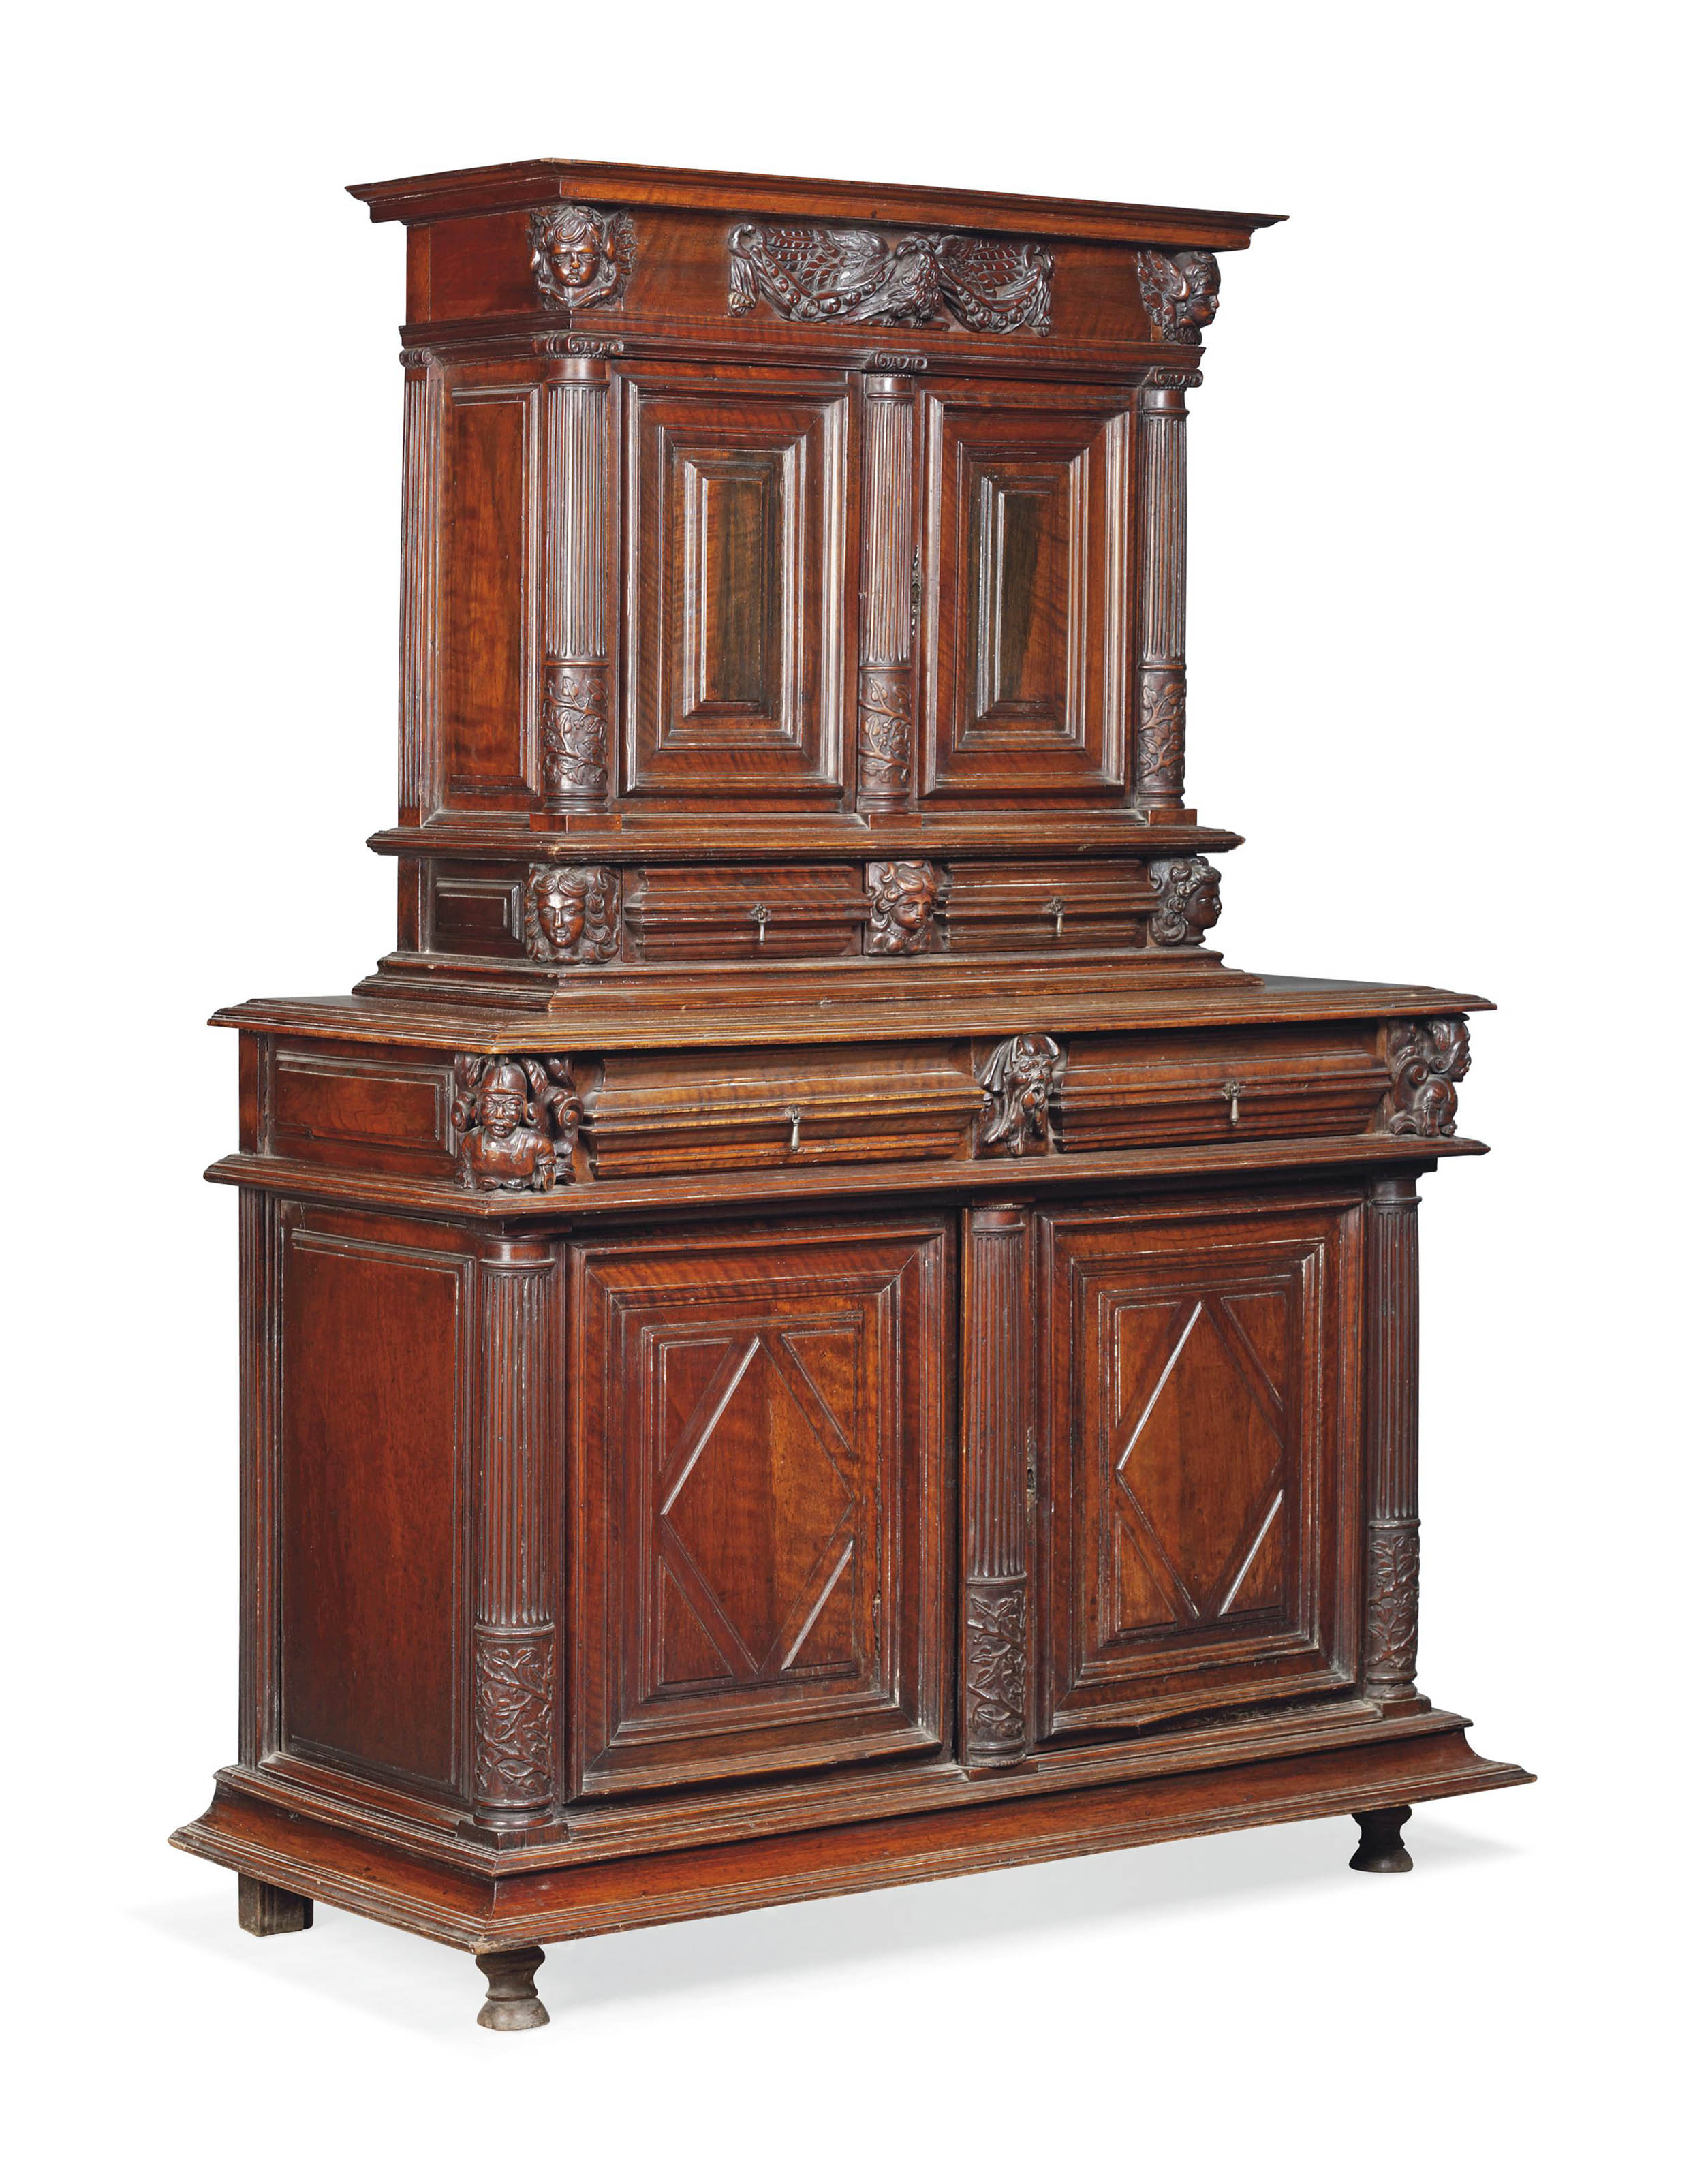 A FRENCH WALNUT BUFFET A DEUX CORPS